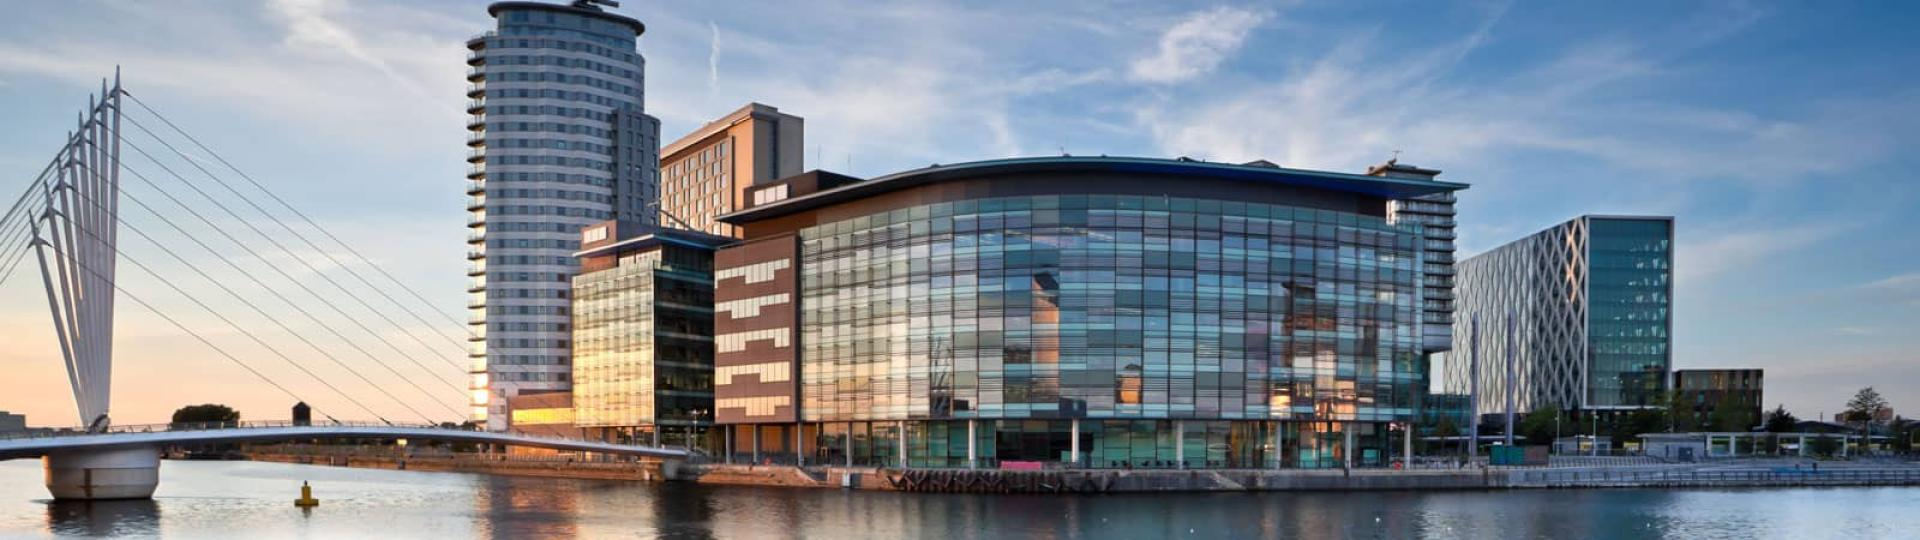 wide image of Salford Quays